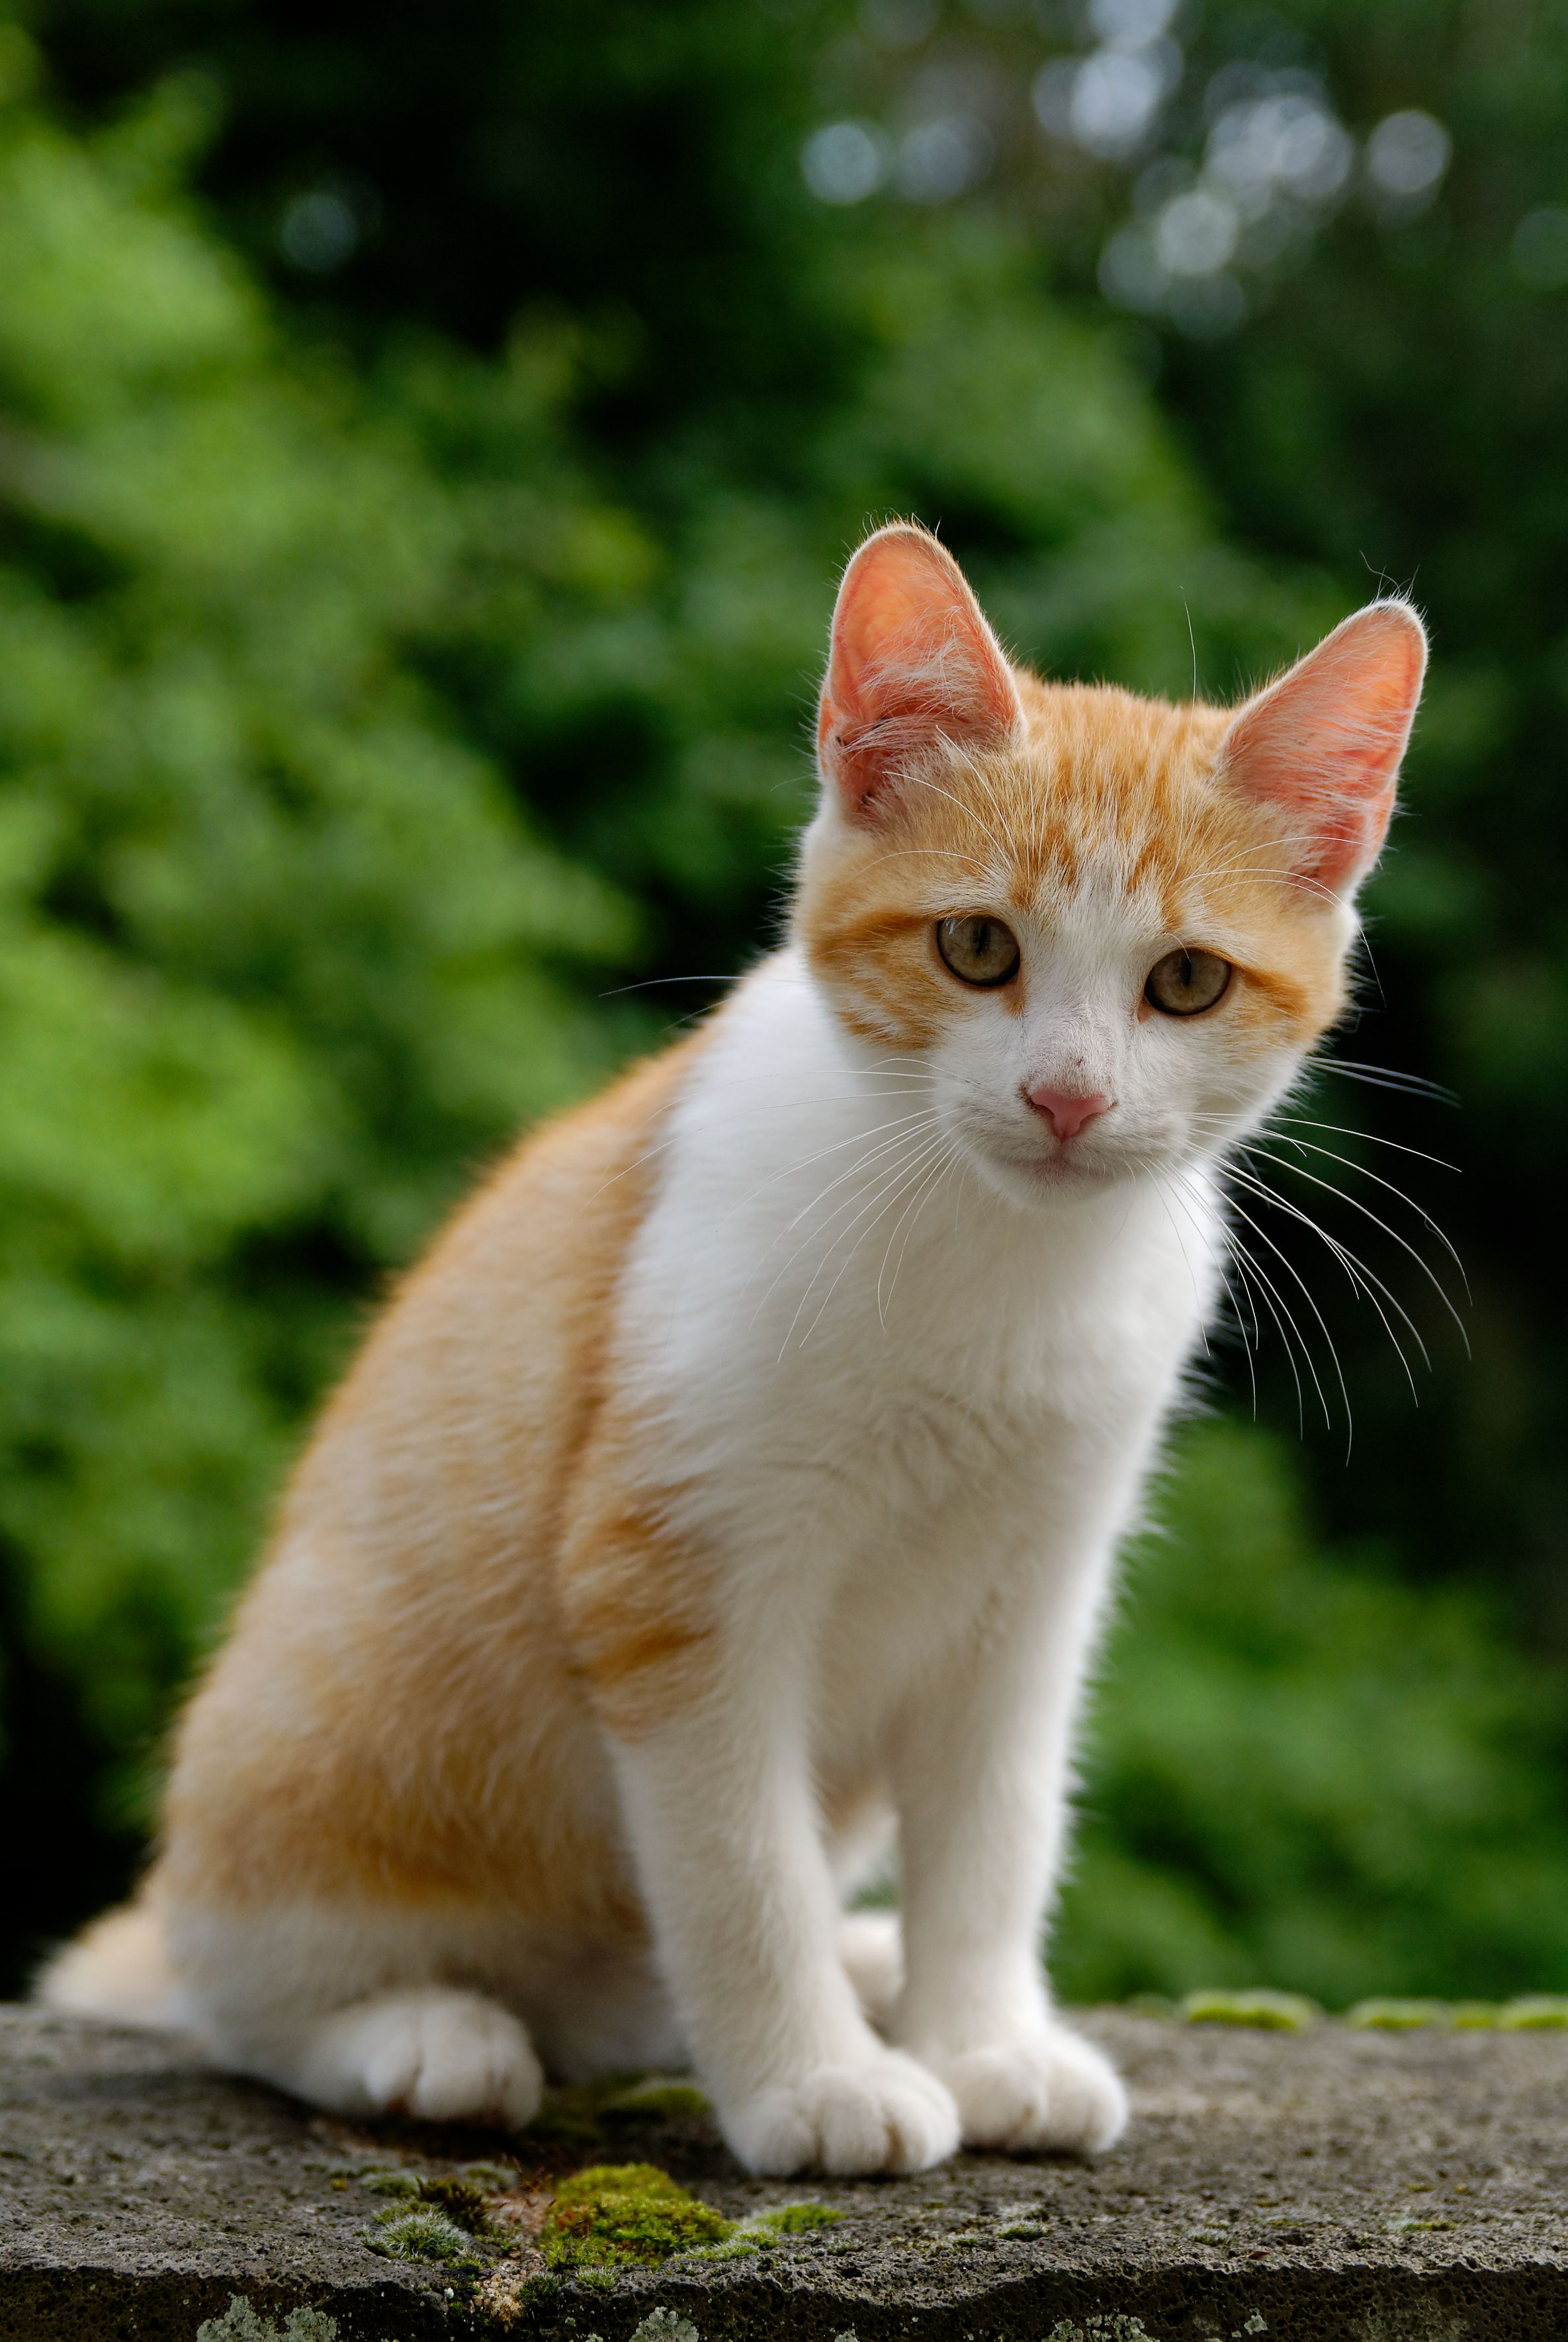 Great Tips About Cats That Anyone Can Use Read More Details By Clicking On The Image Catstraining Cats Cute Cats And Kittens Cute Cats